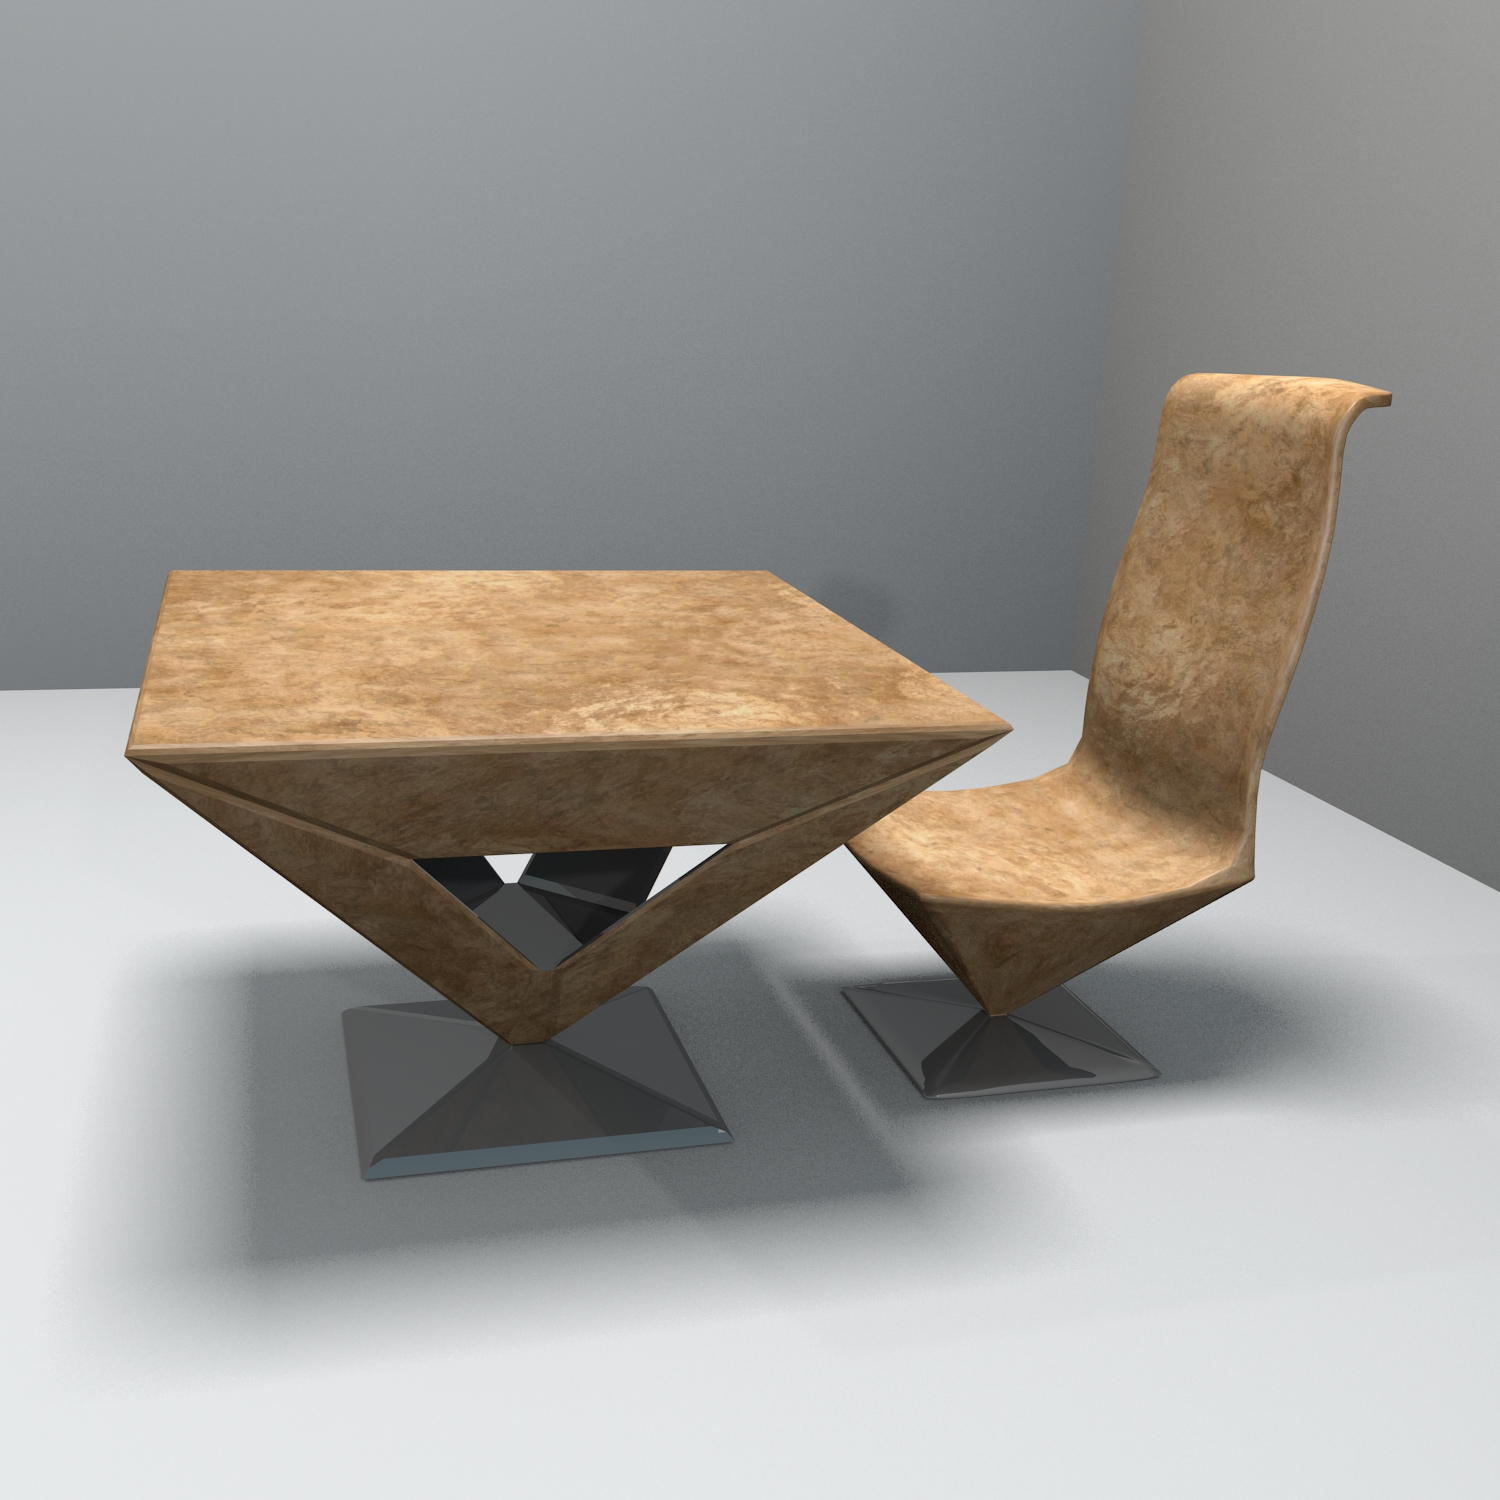 pyramid table and chair 3d model blend obj 140164